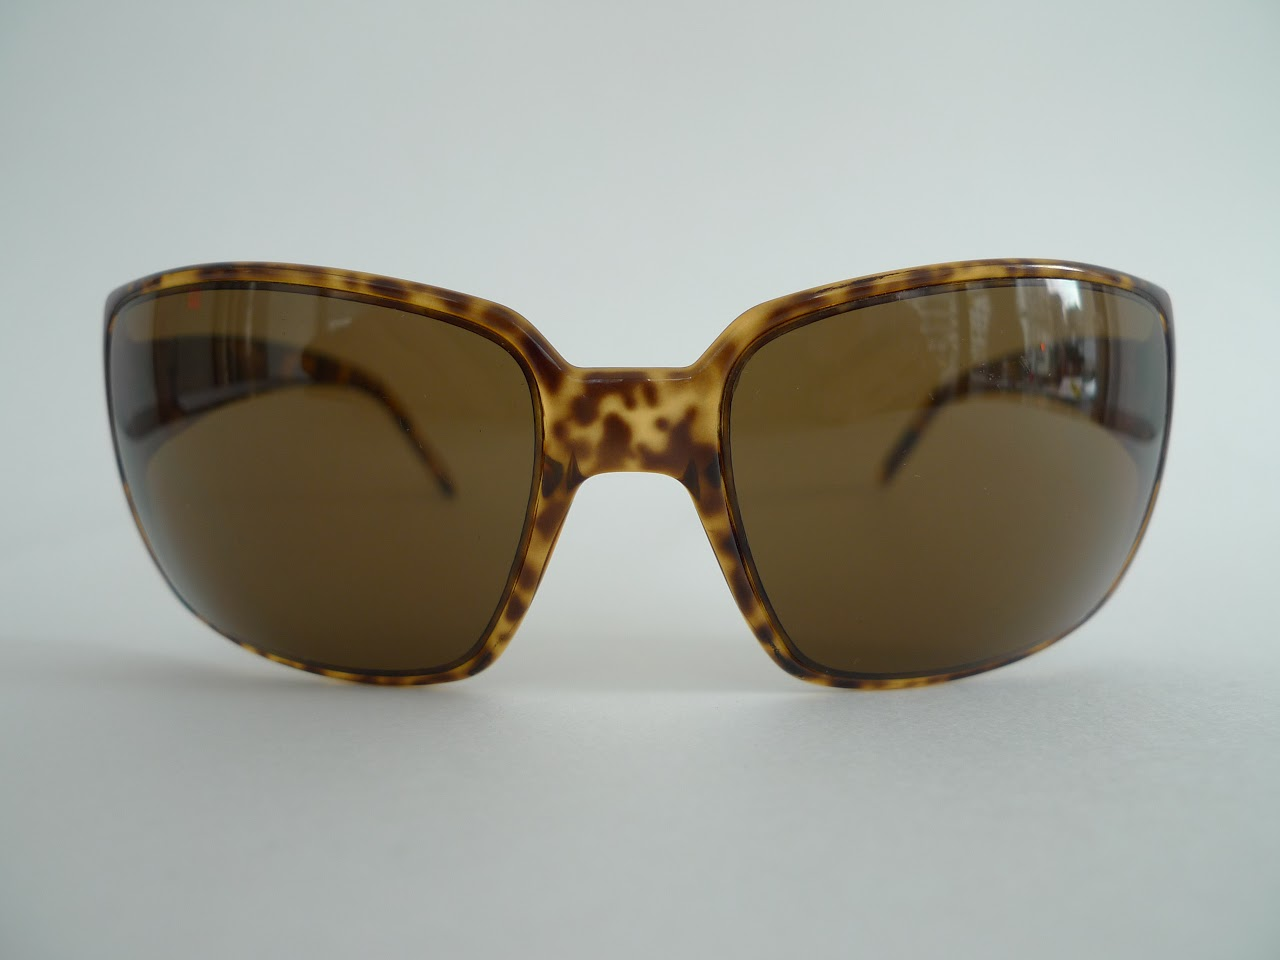 Gucci Tortoise Shell Square Frame Sunglasses